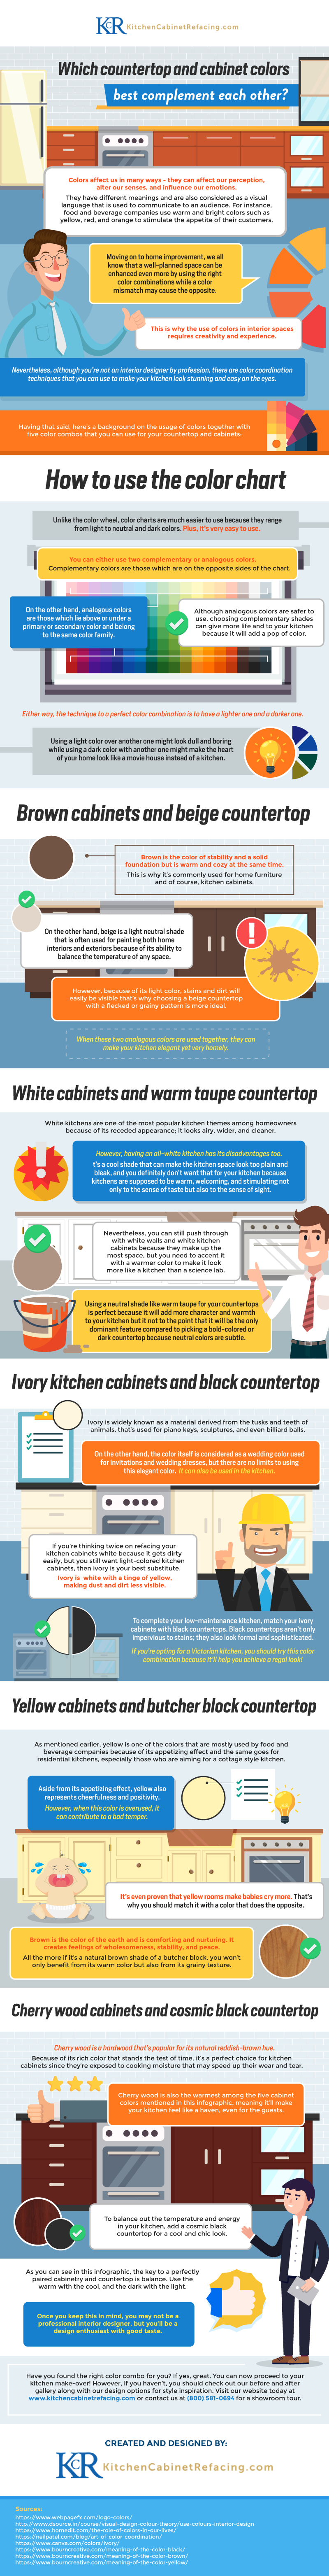 Which Countertop and Cabinet Colors Best Complement Each Other? - Infographic